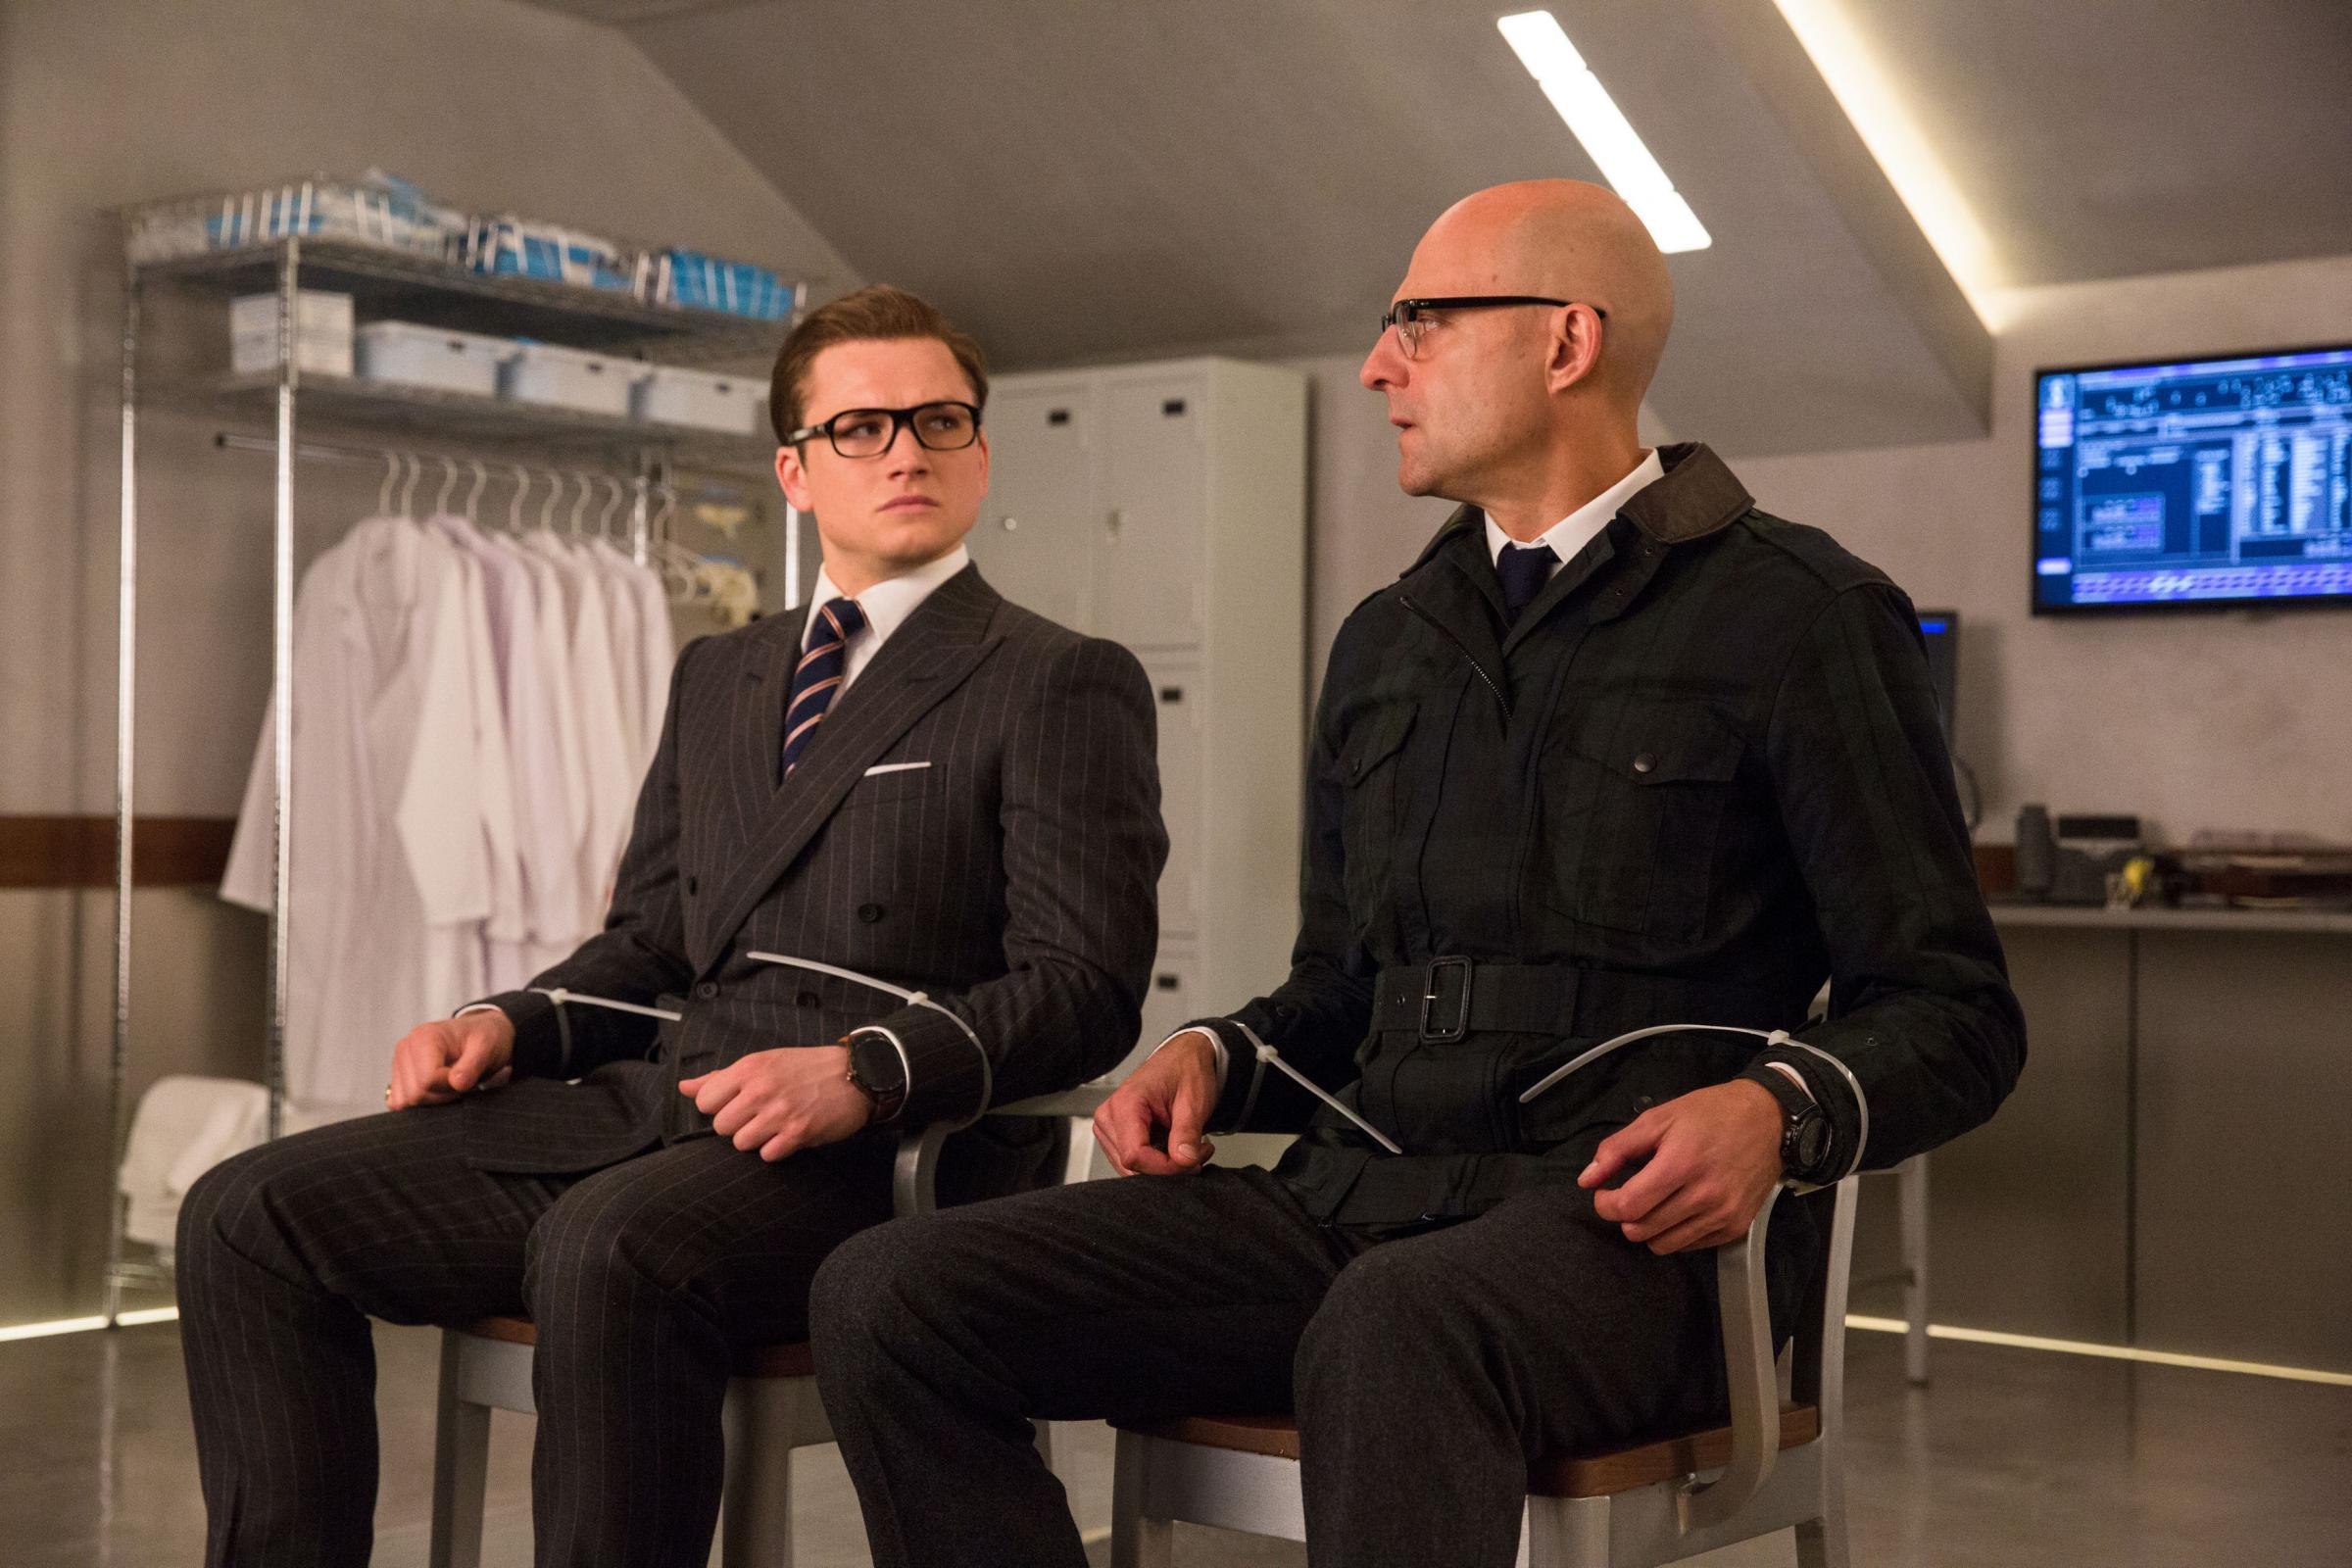 Taron Egerton as Eggsy and Mark Strong as Merlin